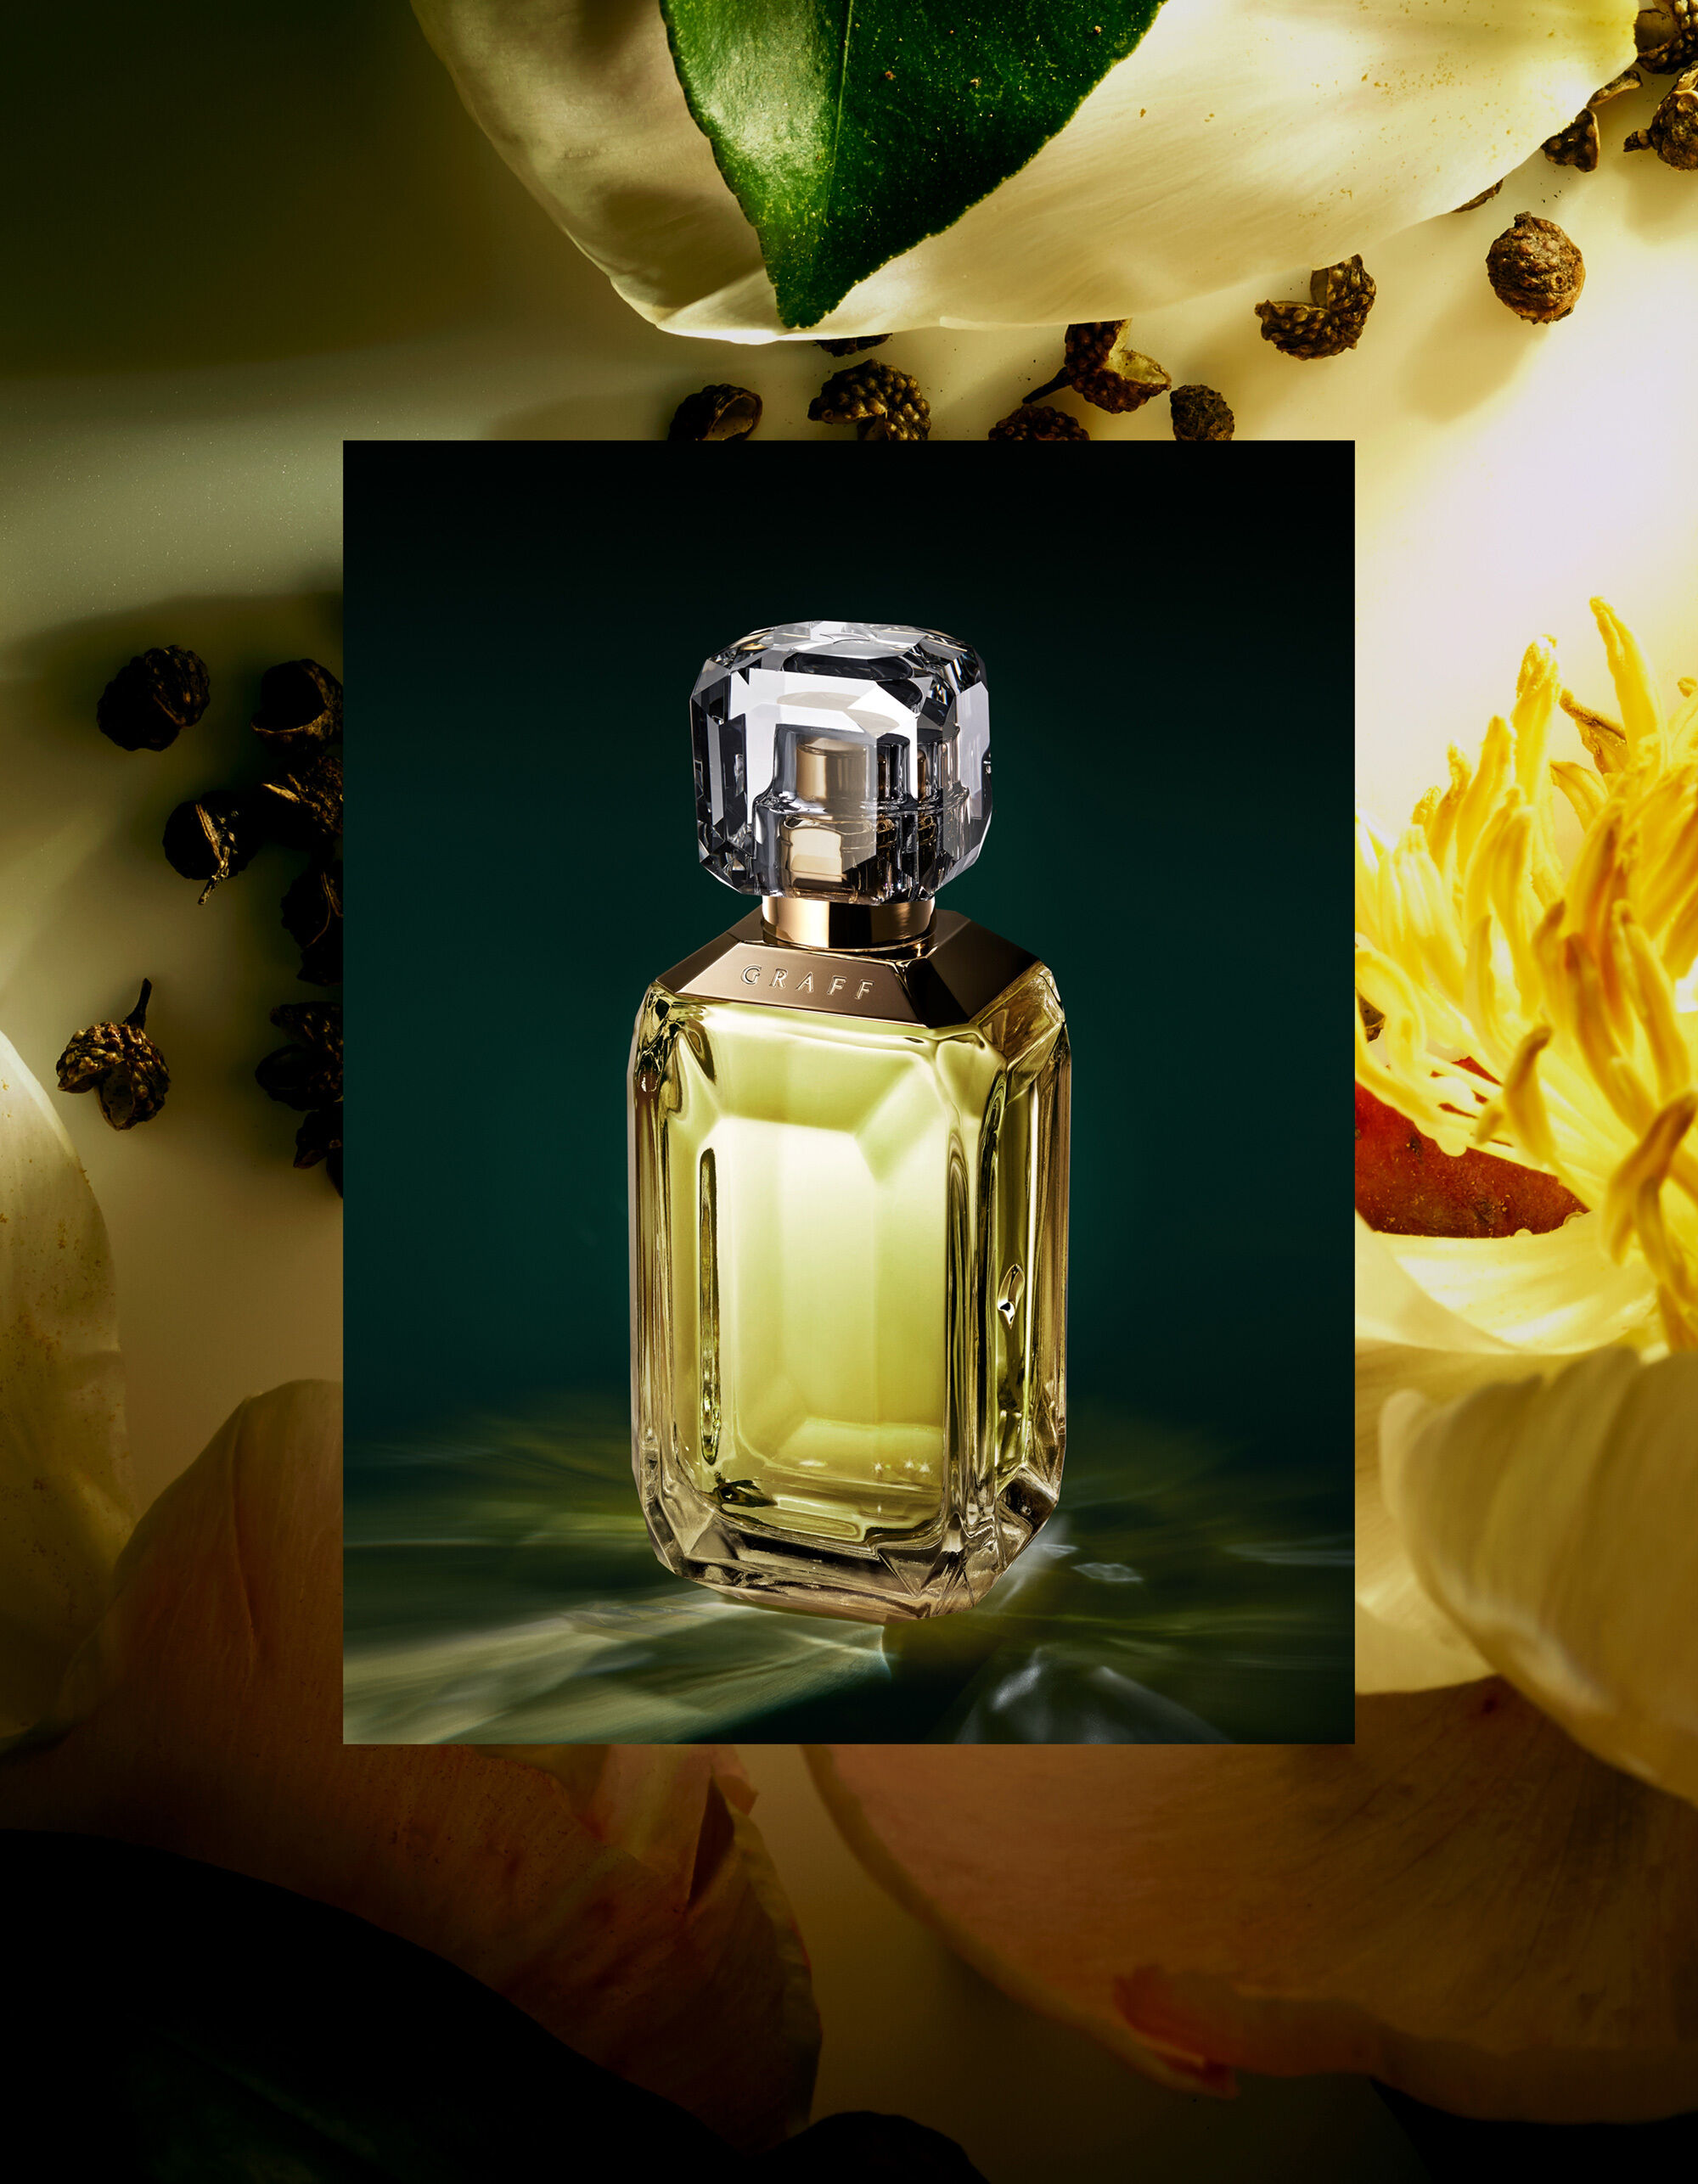 Lesedi La Rona II fragrance with ingredients by Graff